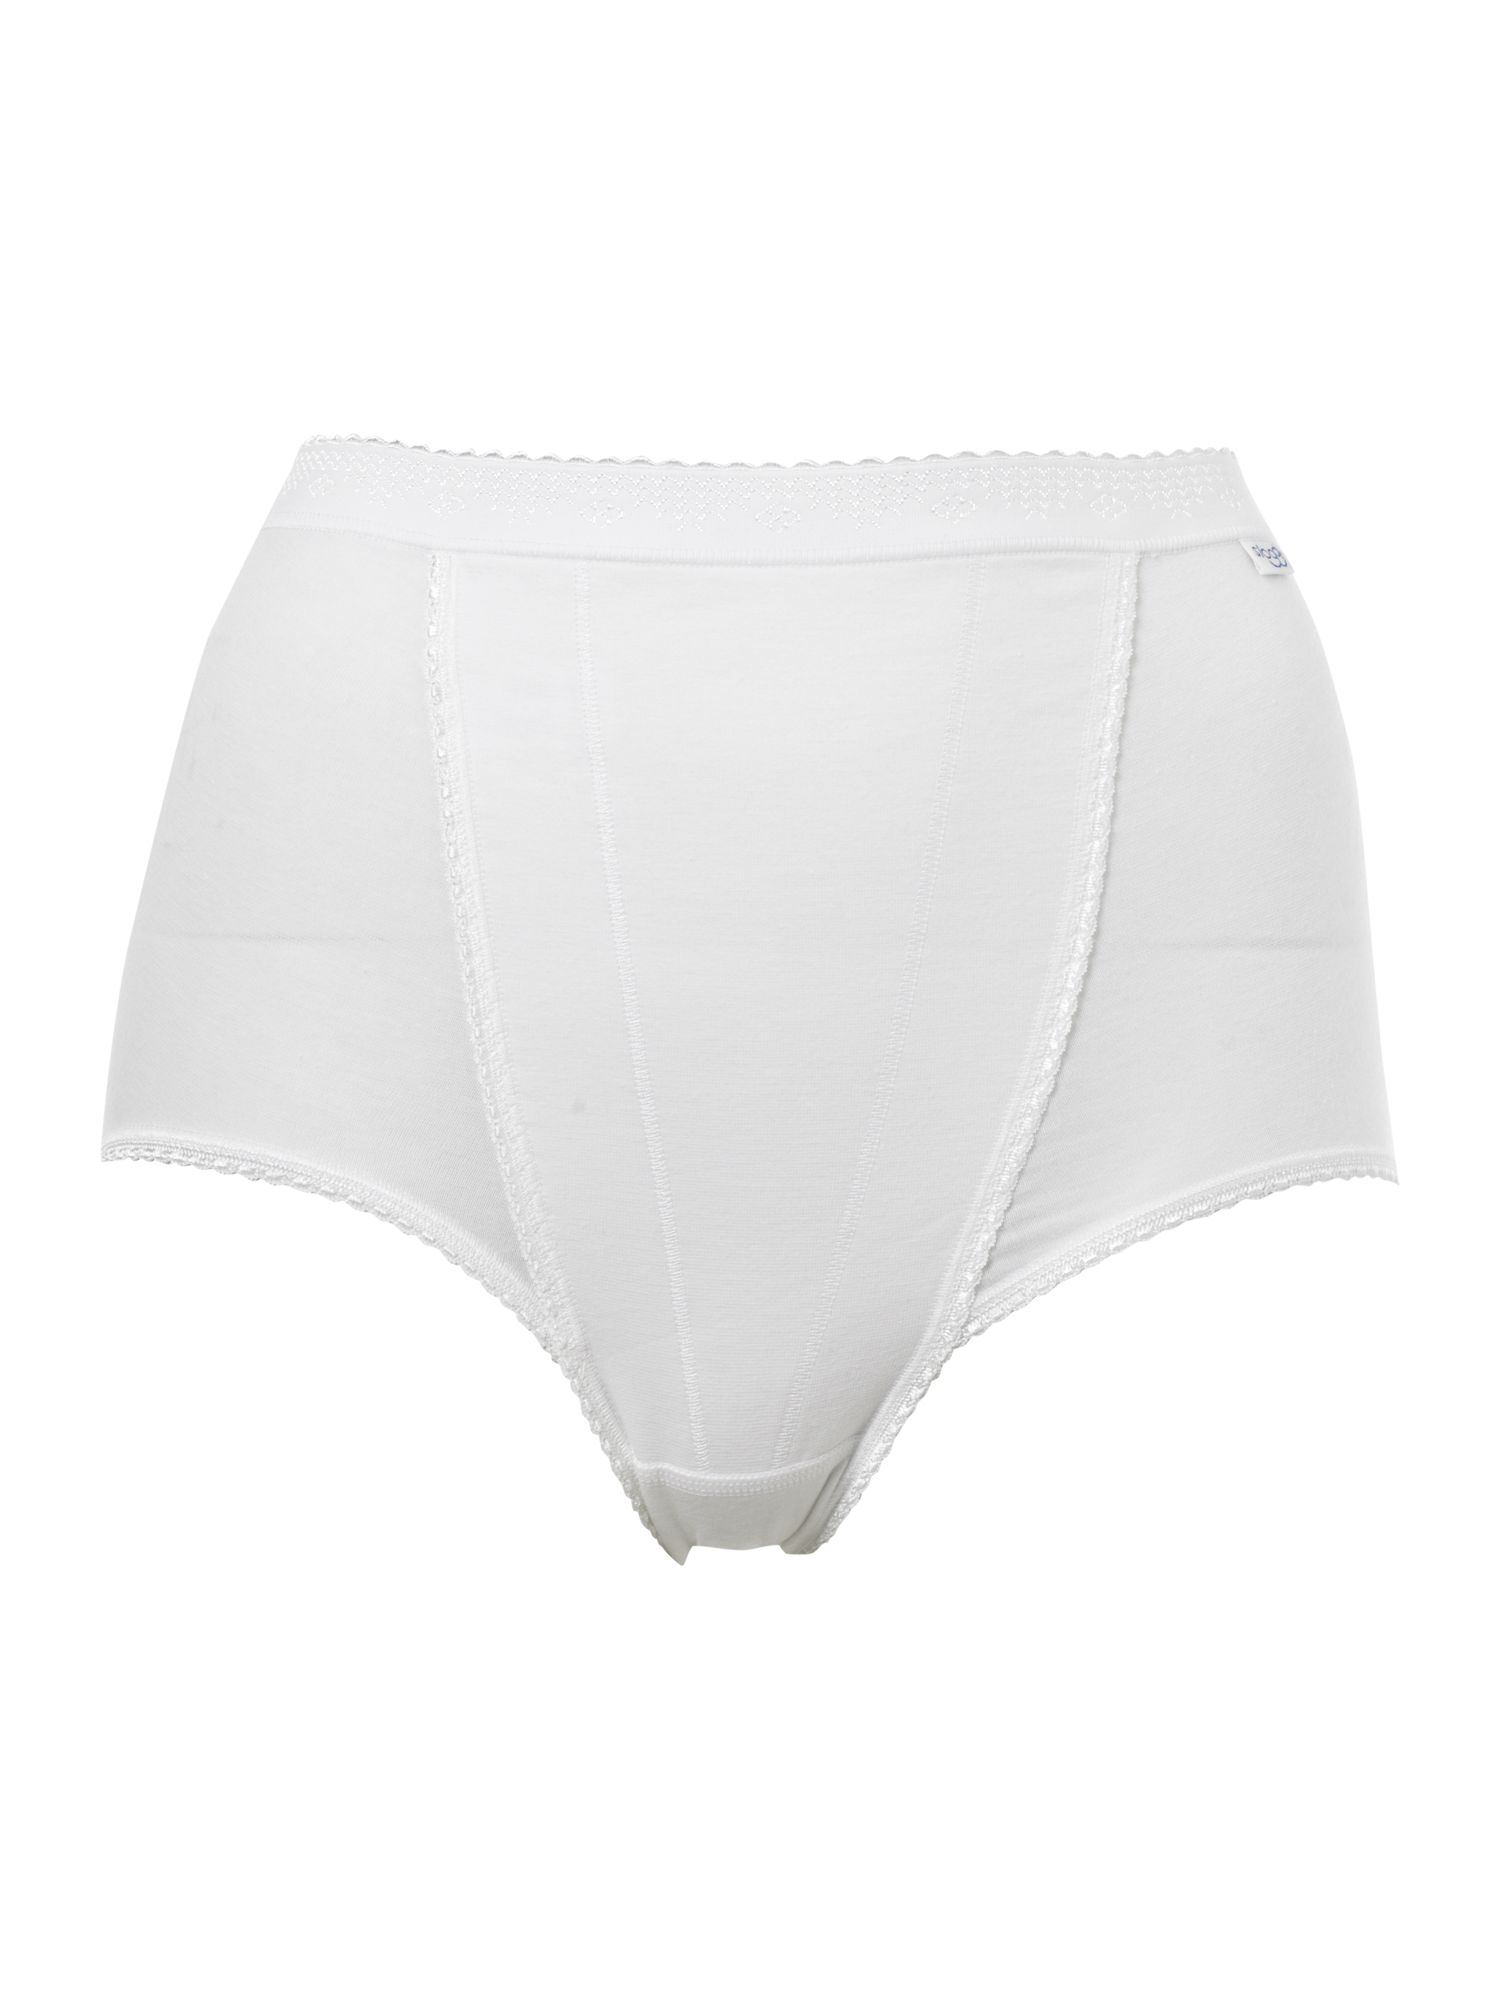 Sloggi Control maxi 2 pack briefs White